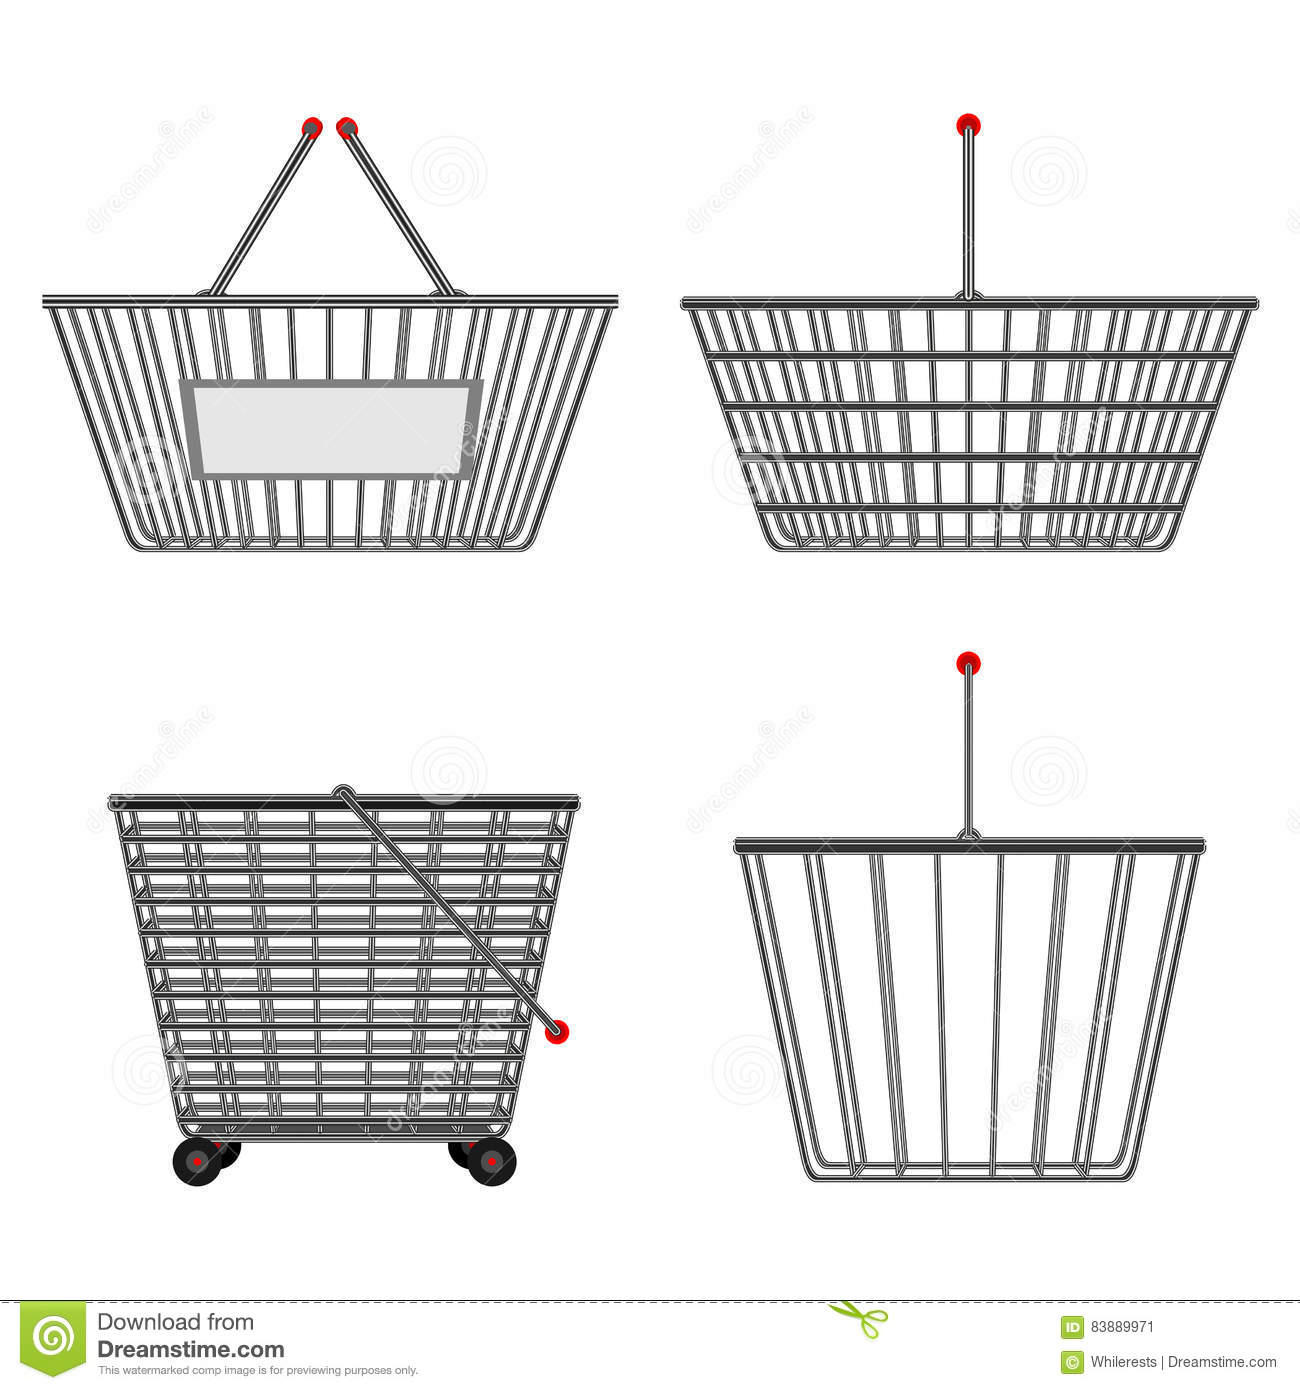 Four Realistic Metallic Chrome Wire Empty Baskets Of Different Wiring Diagram Shapes Illustration